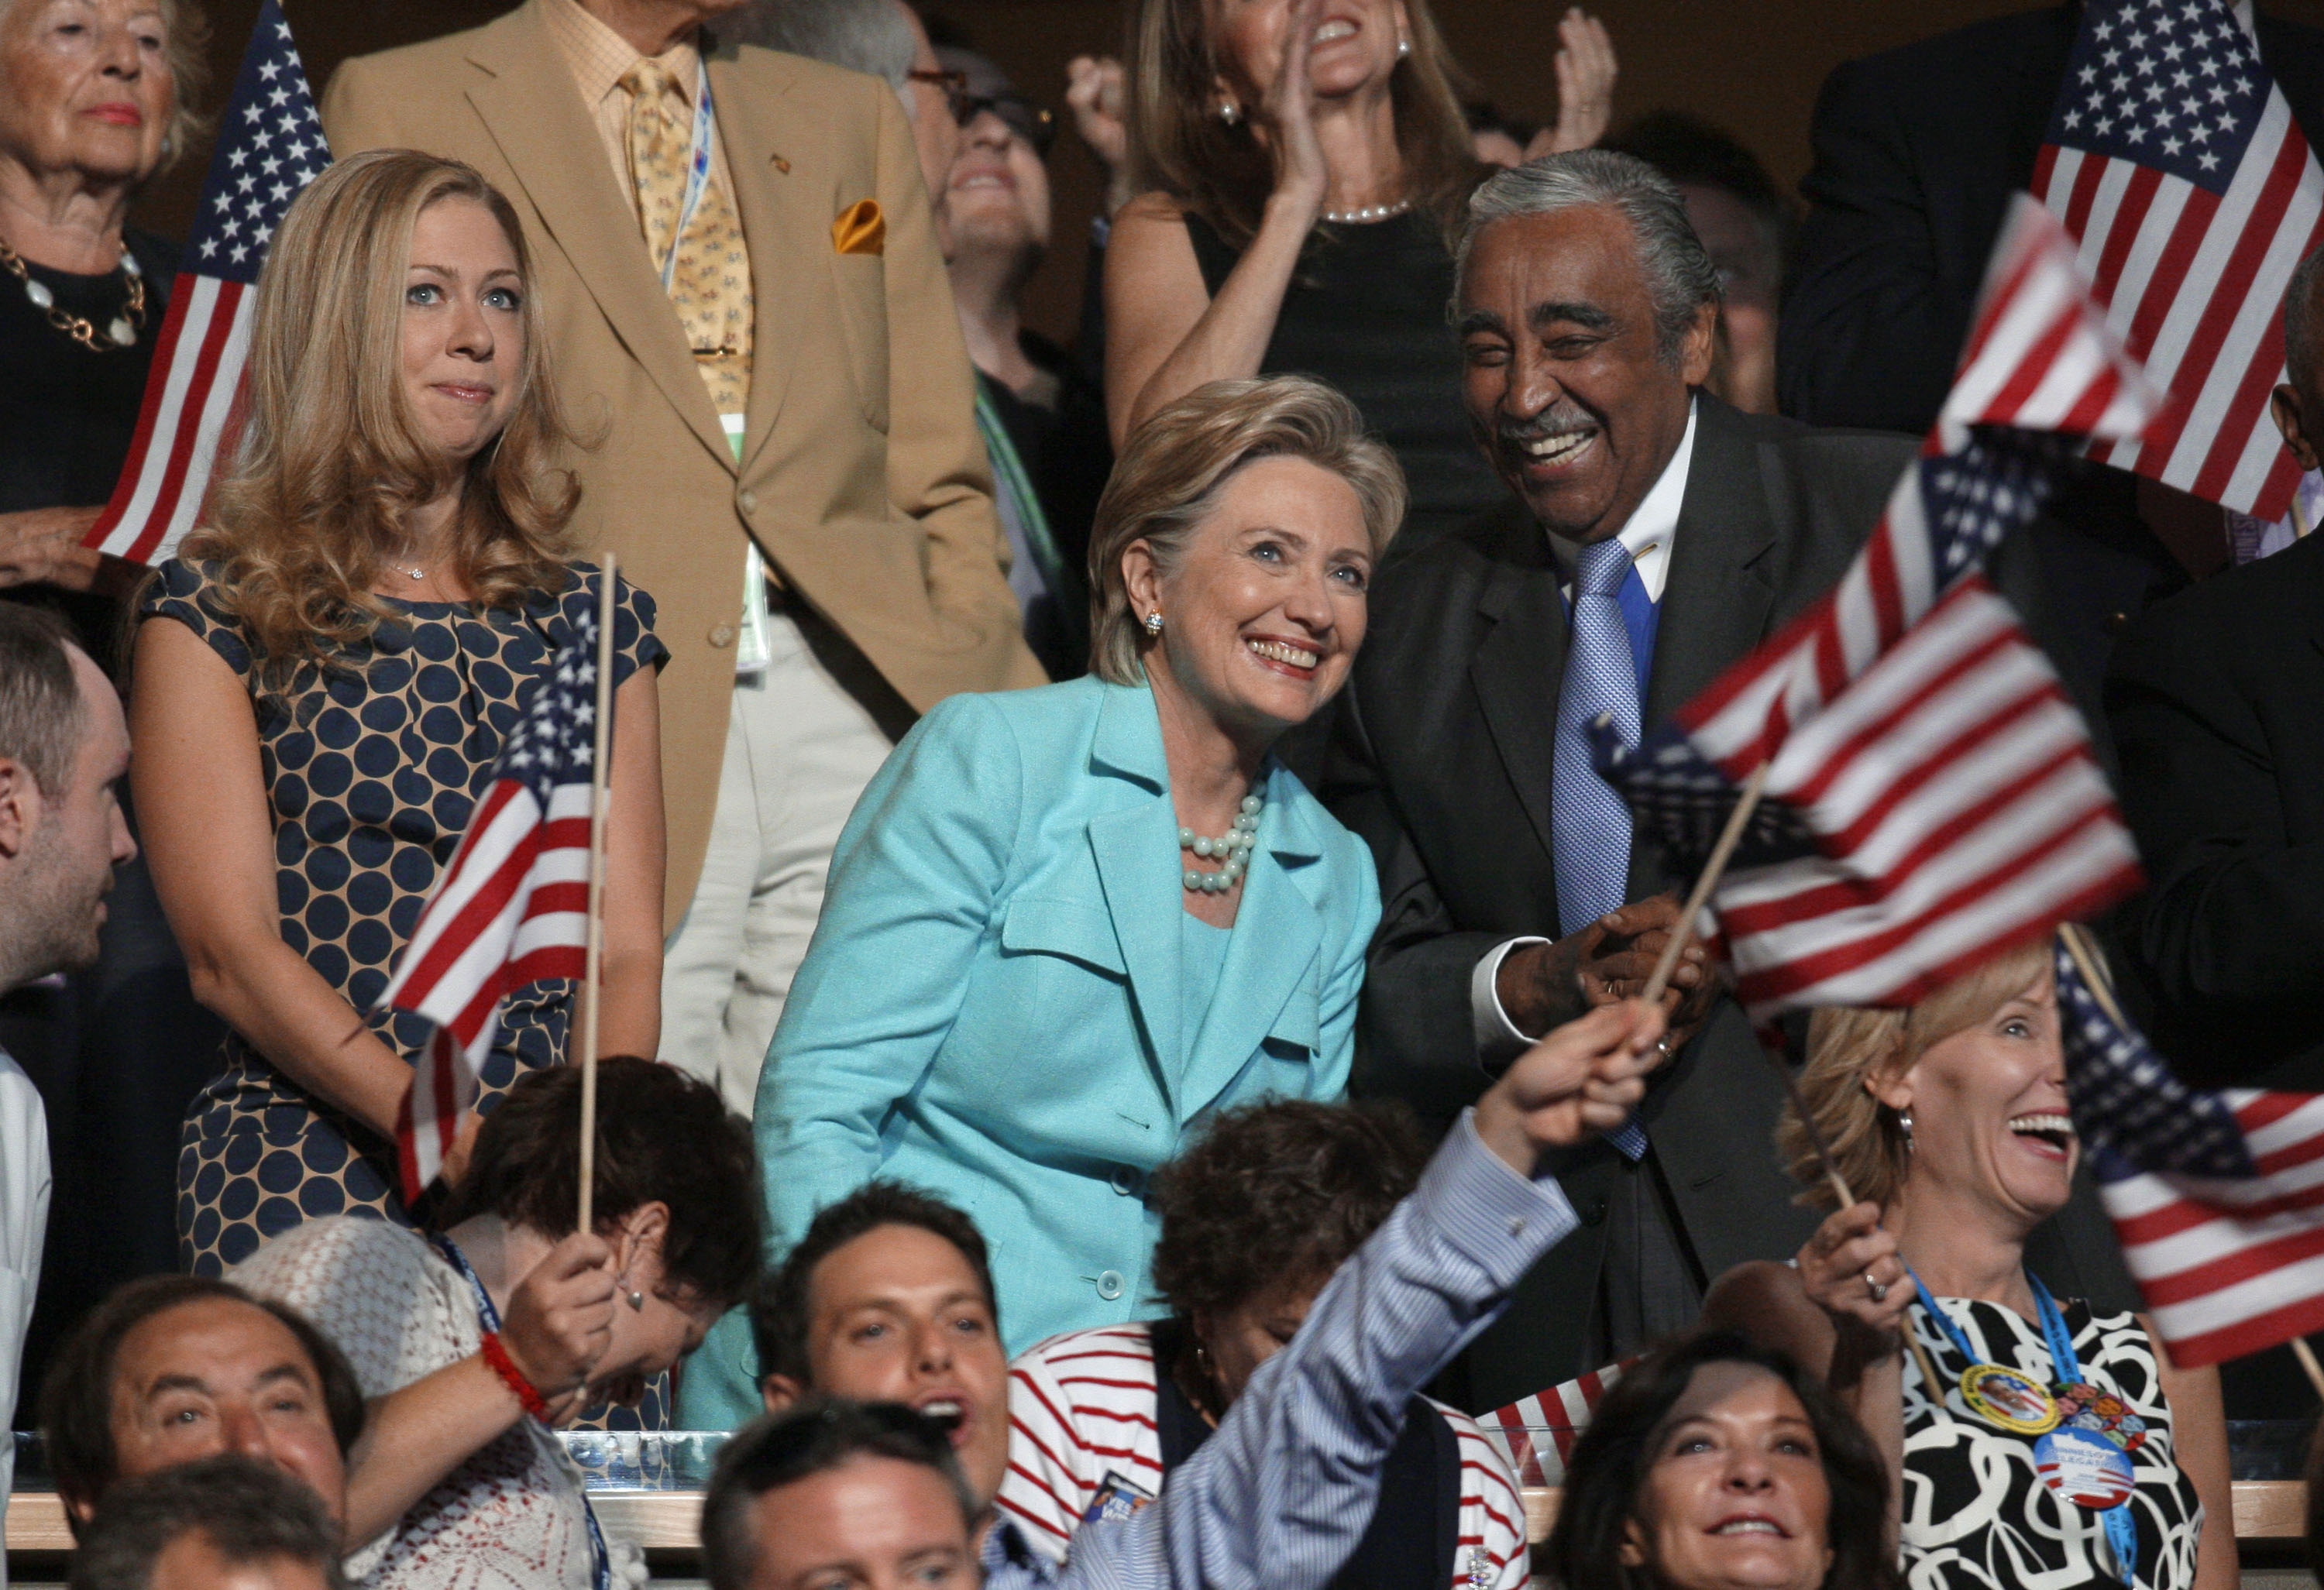 Sen. Hillary Rodham Clinton, D-N.Y., is seen with Rep. Charles Rangel, D-N.Y., and her daughter Chelsea Clinton at the Democratic National Convention in Denver, Aug. 27, 2008.